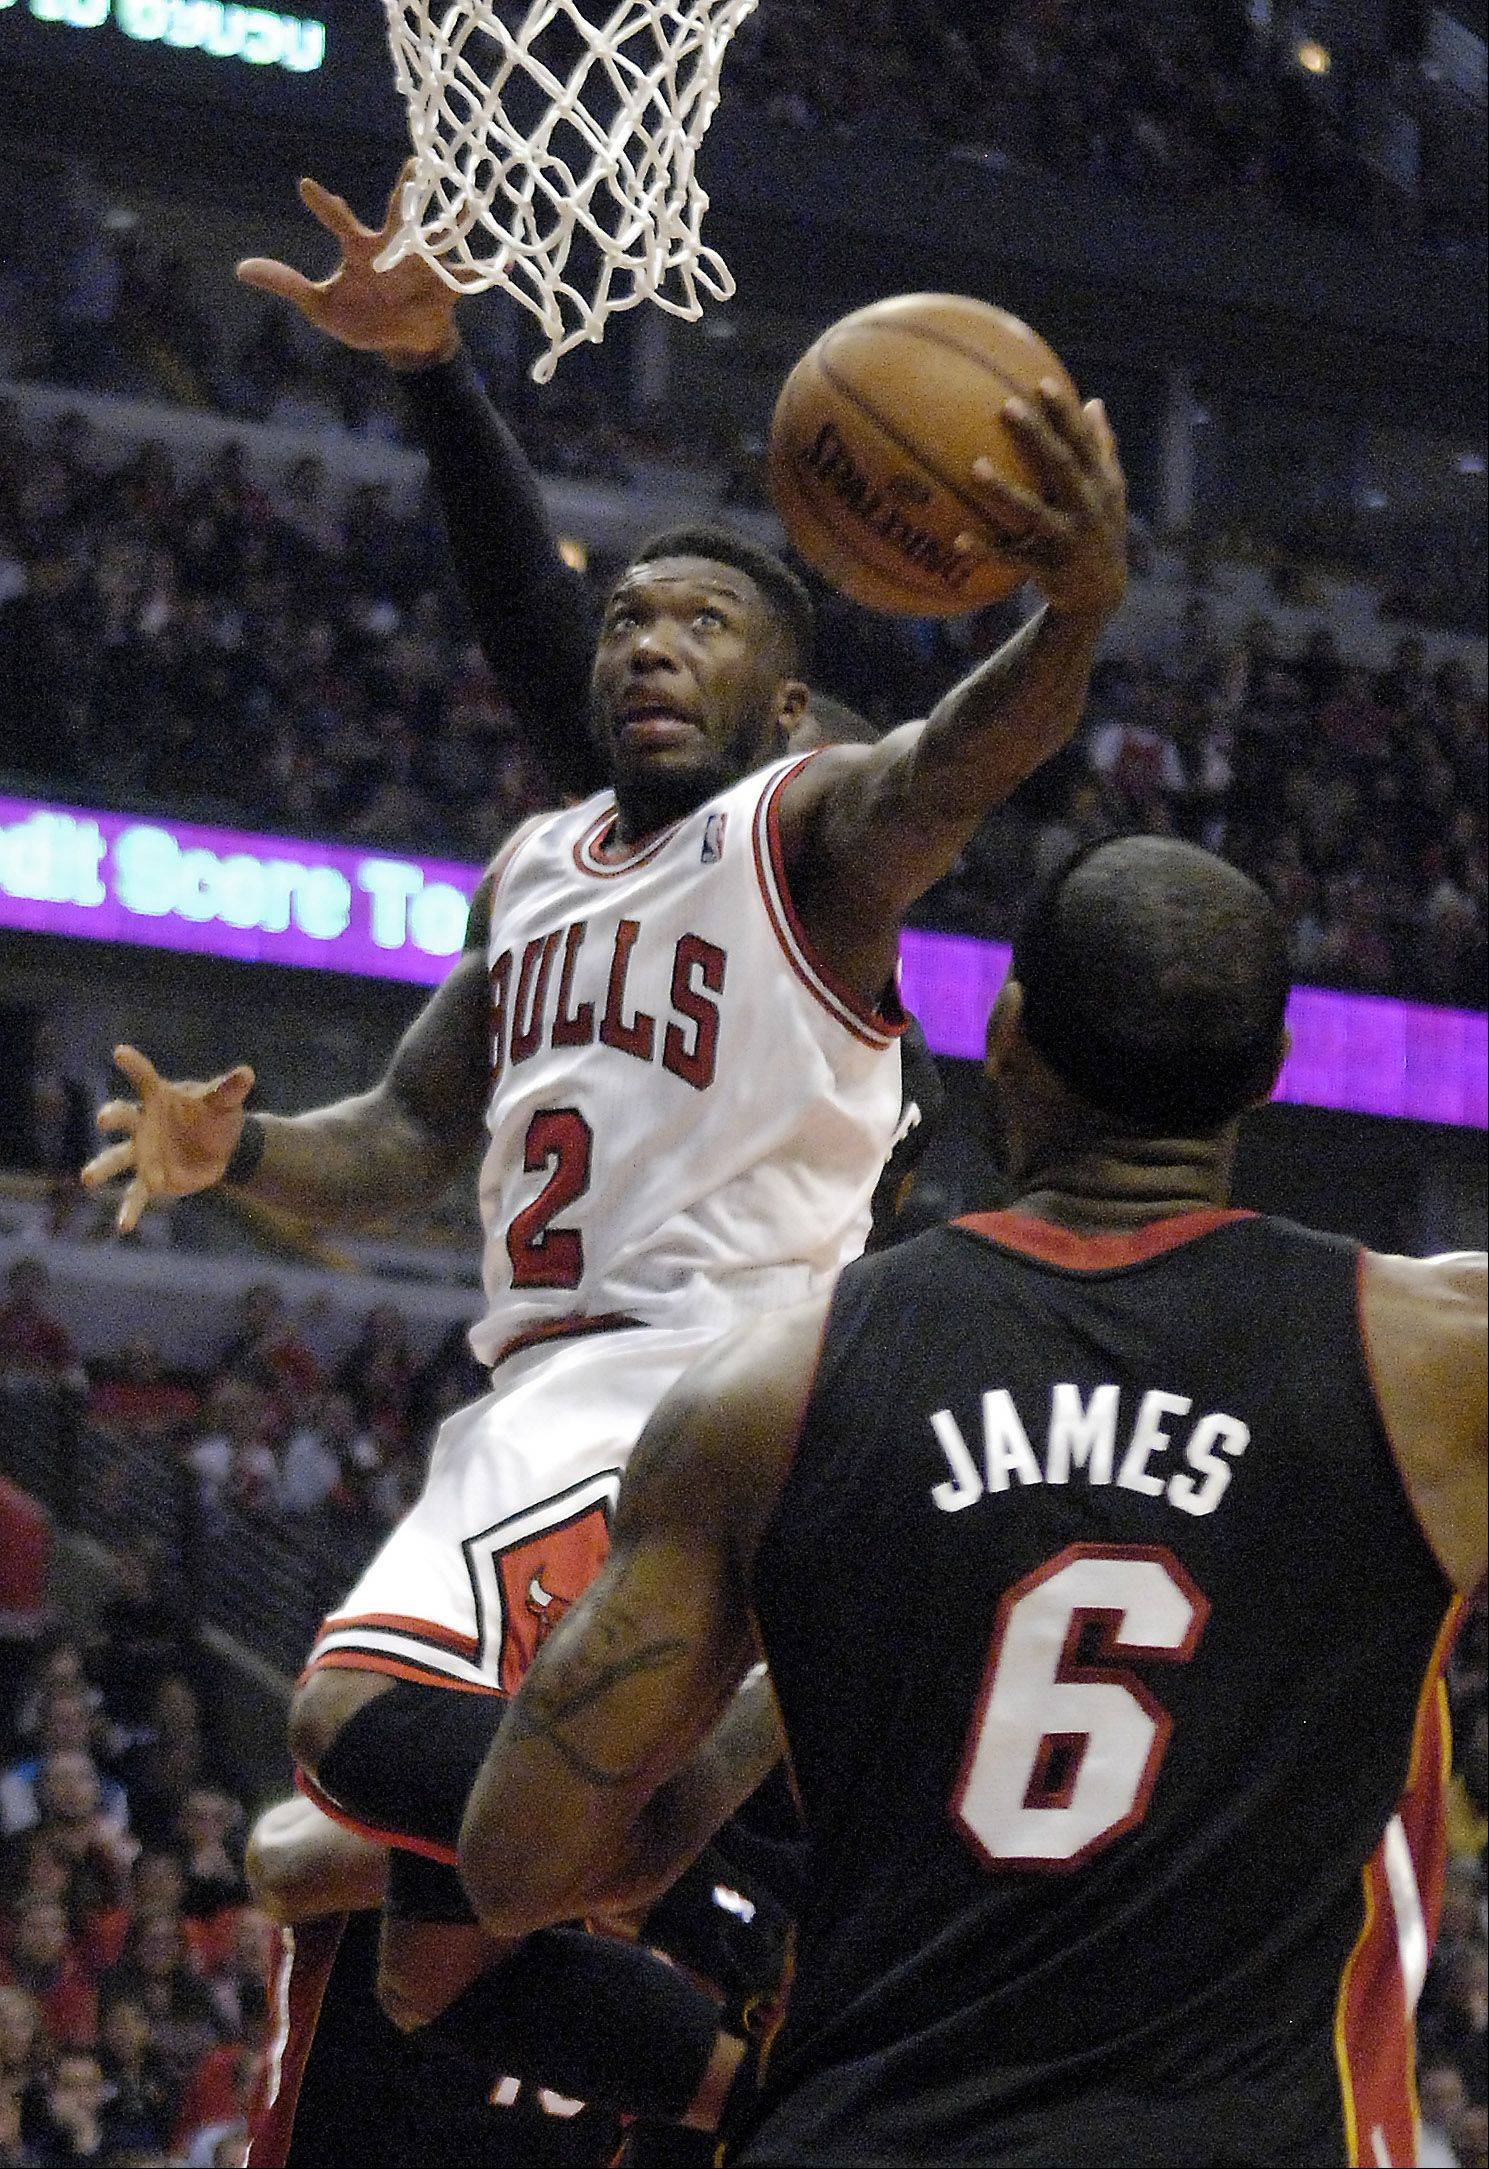 Rick West/rwest@dailyherald.comChicago Bulls point guard Nate Robinson (2) drives to the basket during game 3 of the NBA Eastern Conference semifinals at the United Center in Chicago Friday.